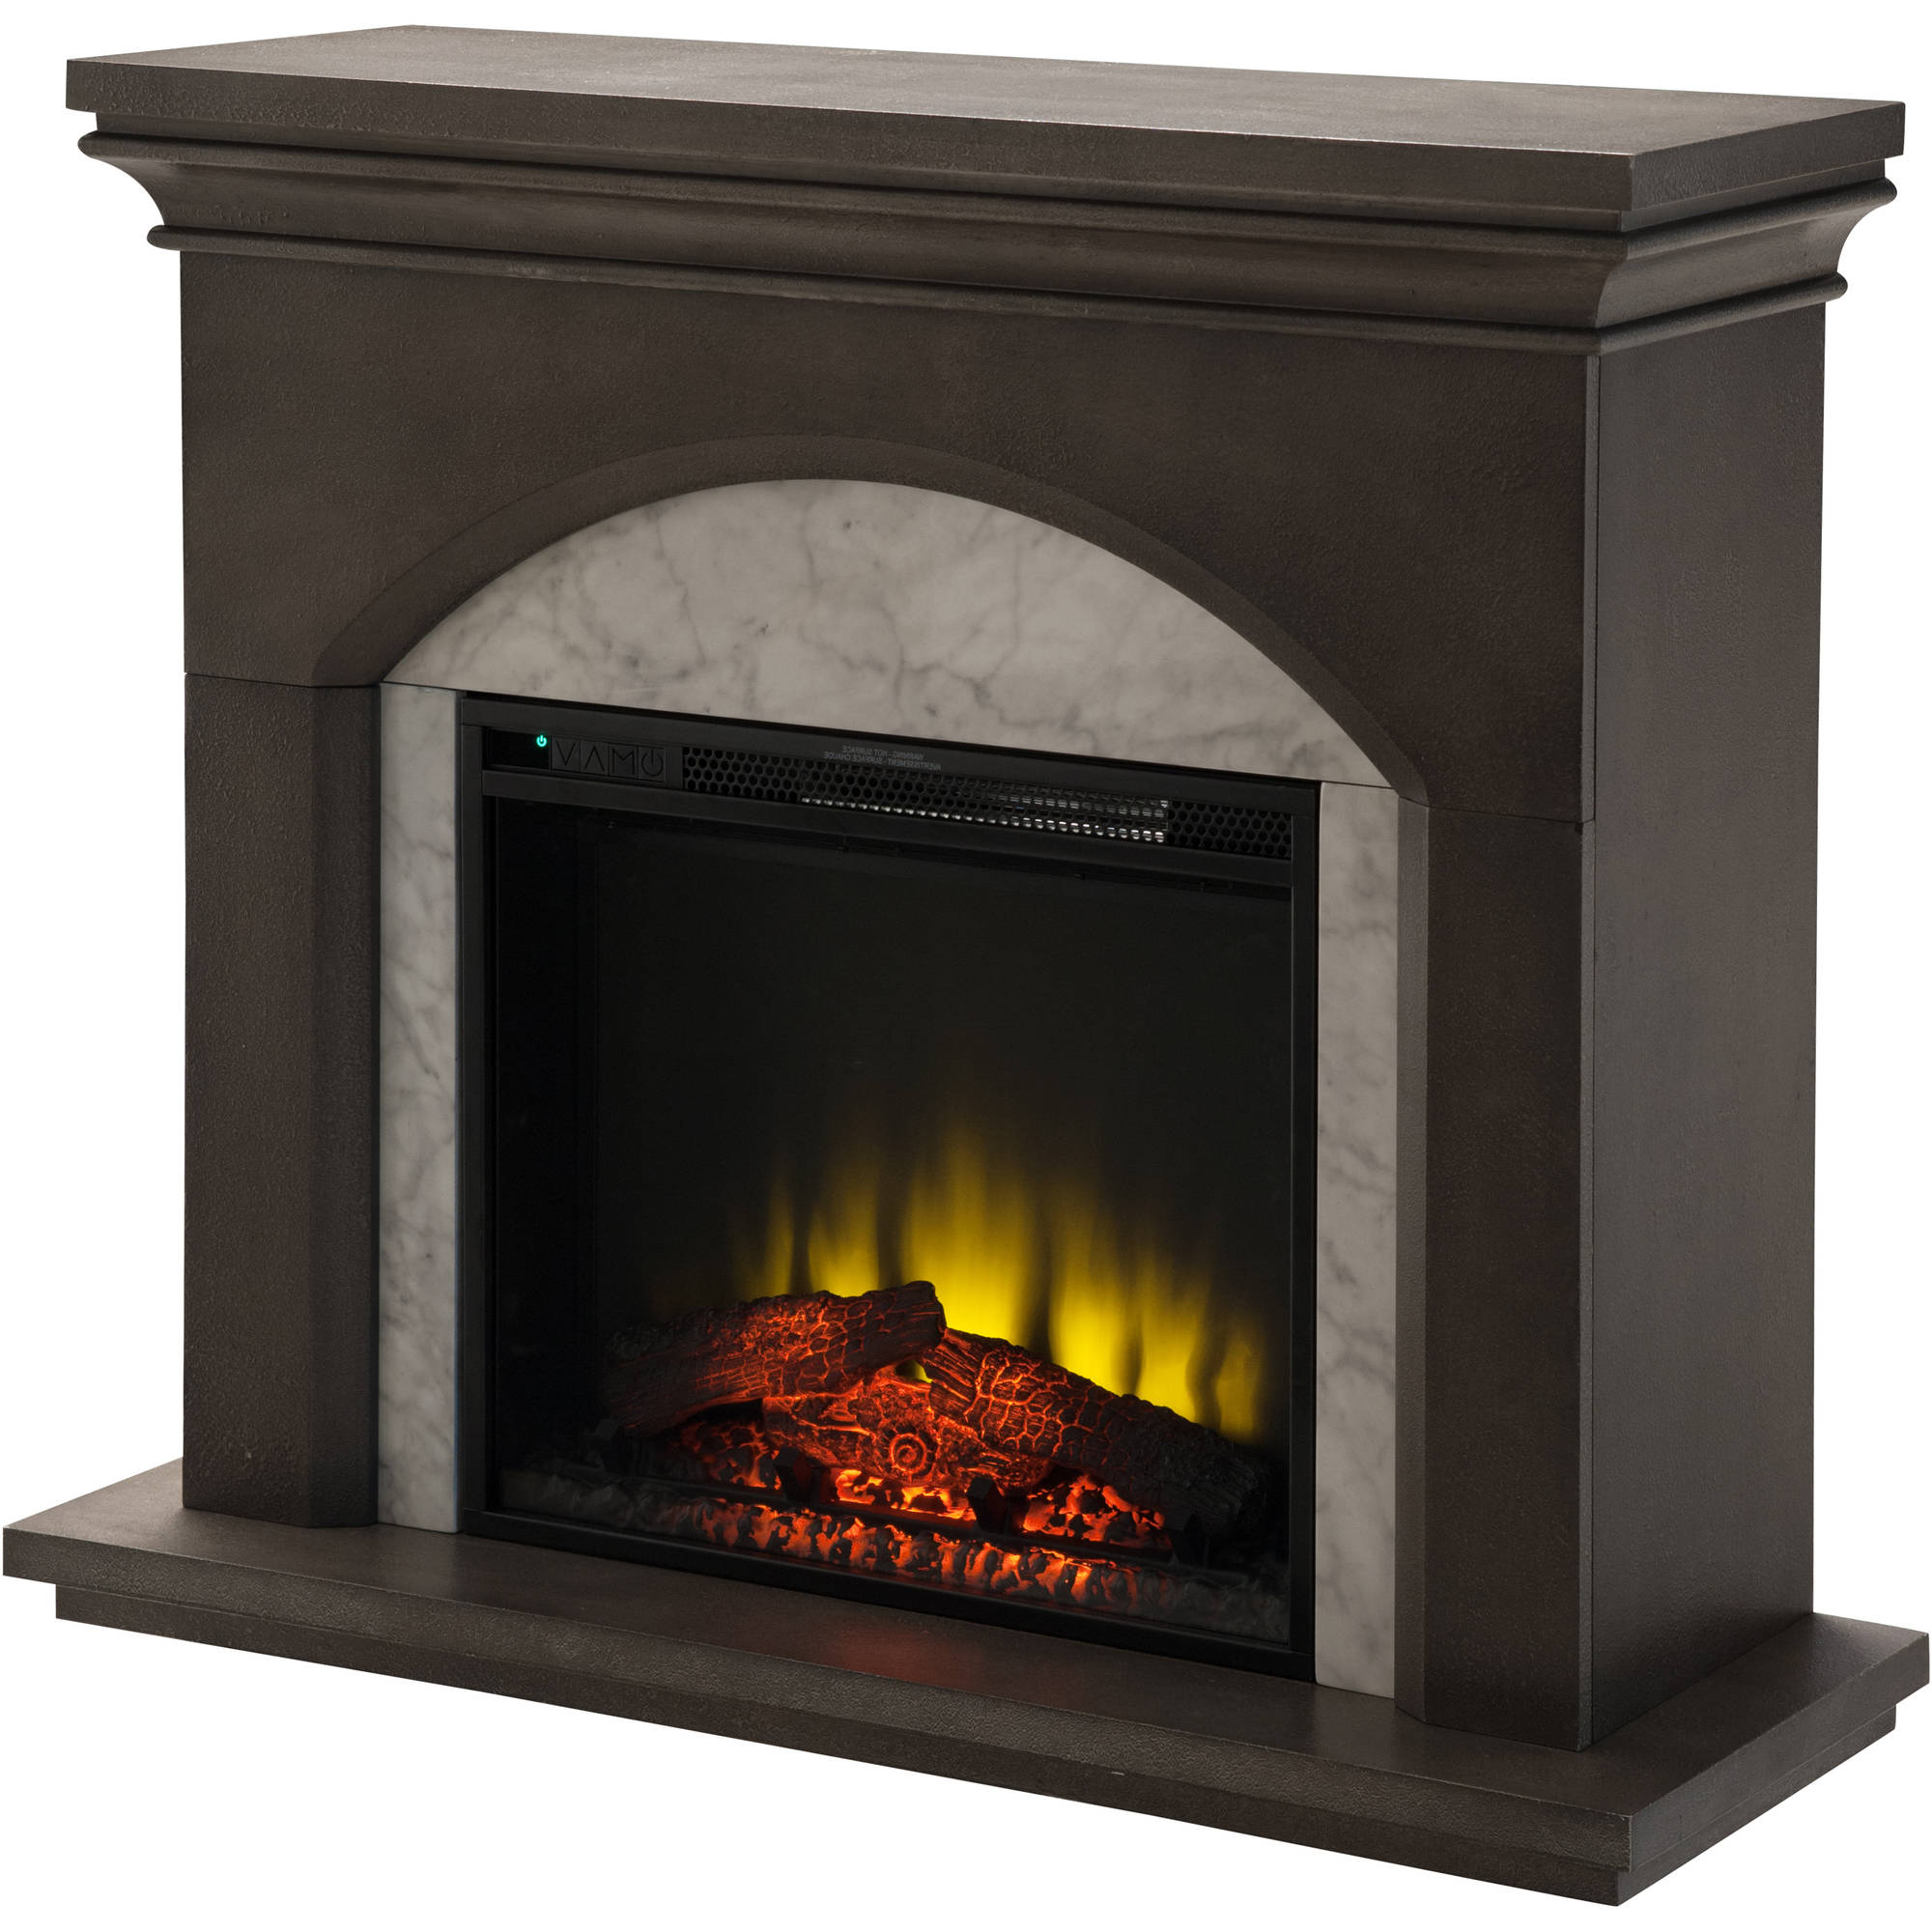 "Prokonian Electric Fireplace with 41"" Cool Gray Mantel"